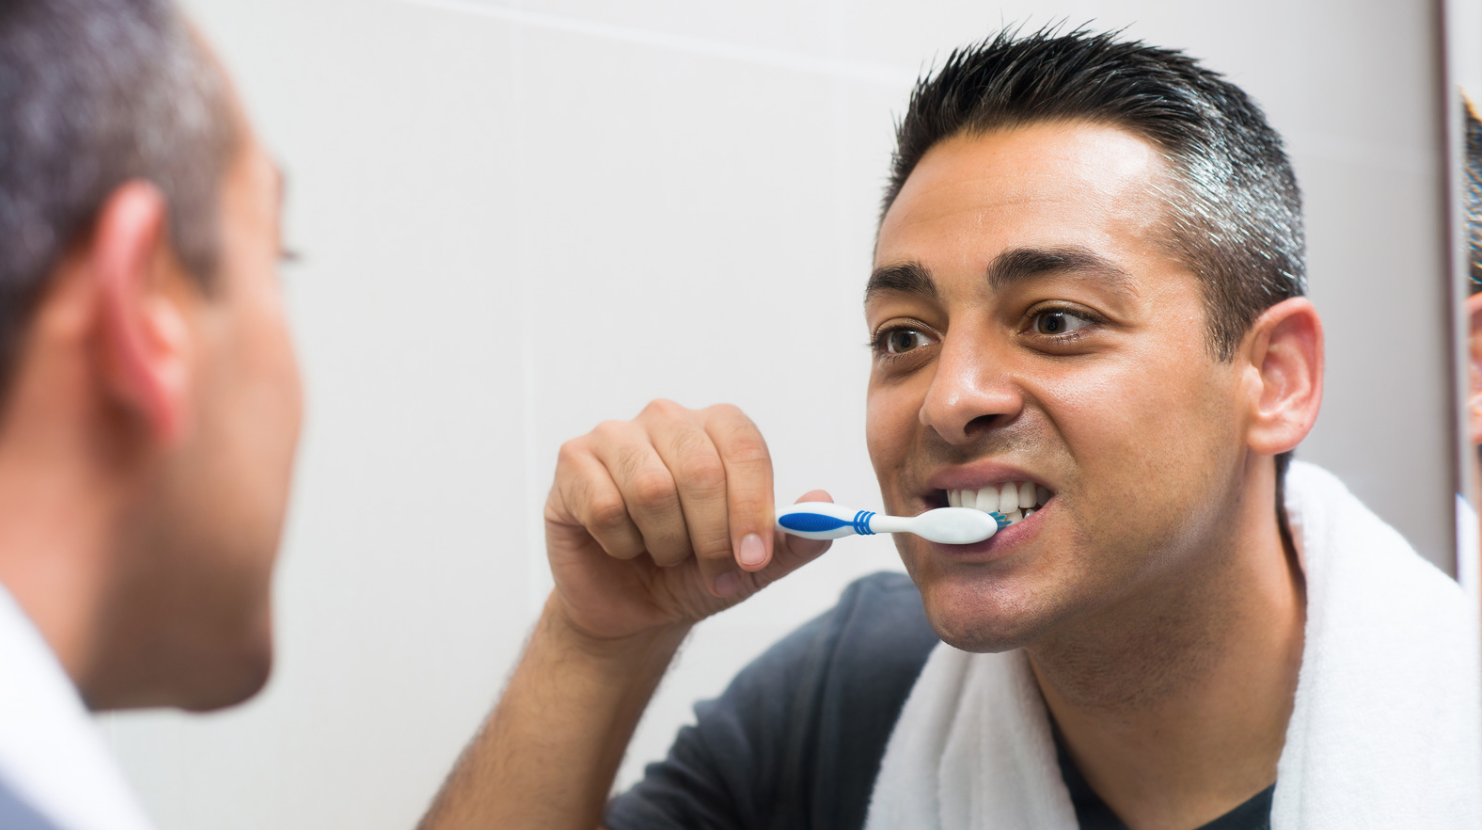 man brushing teeth in mirror